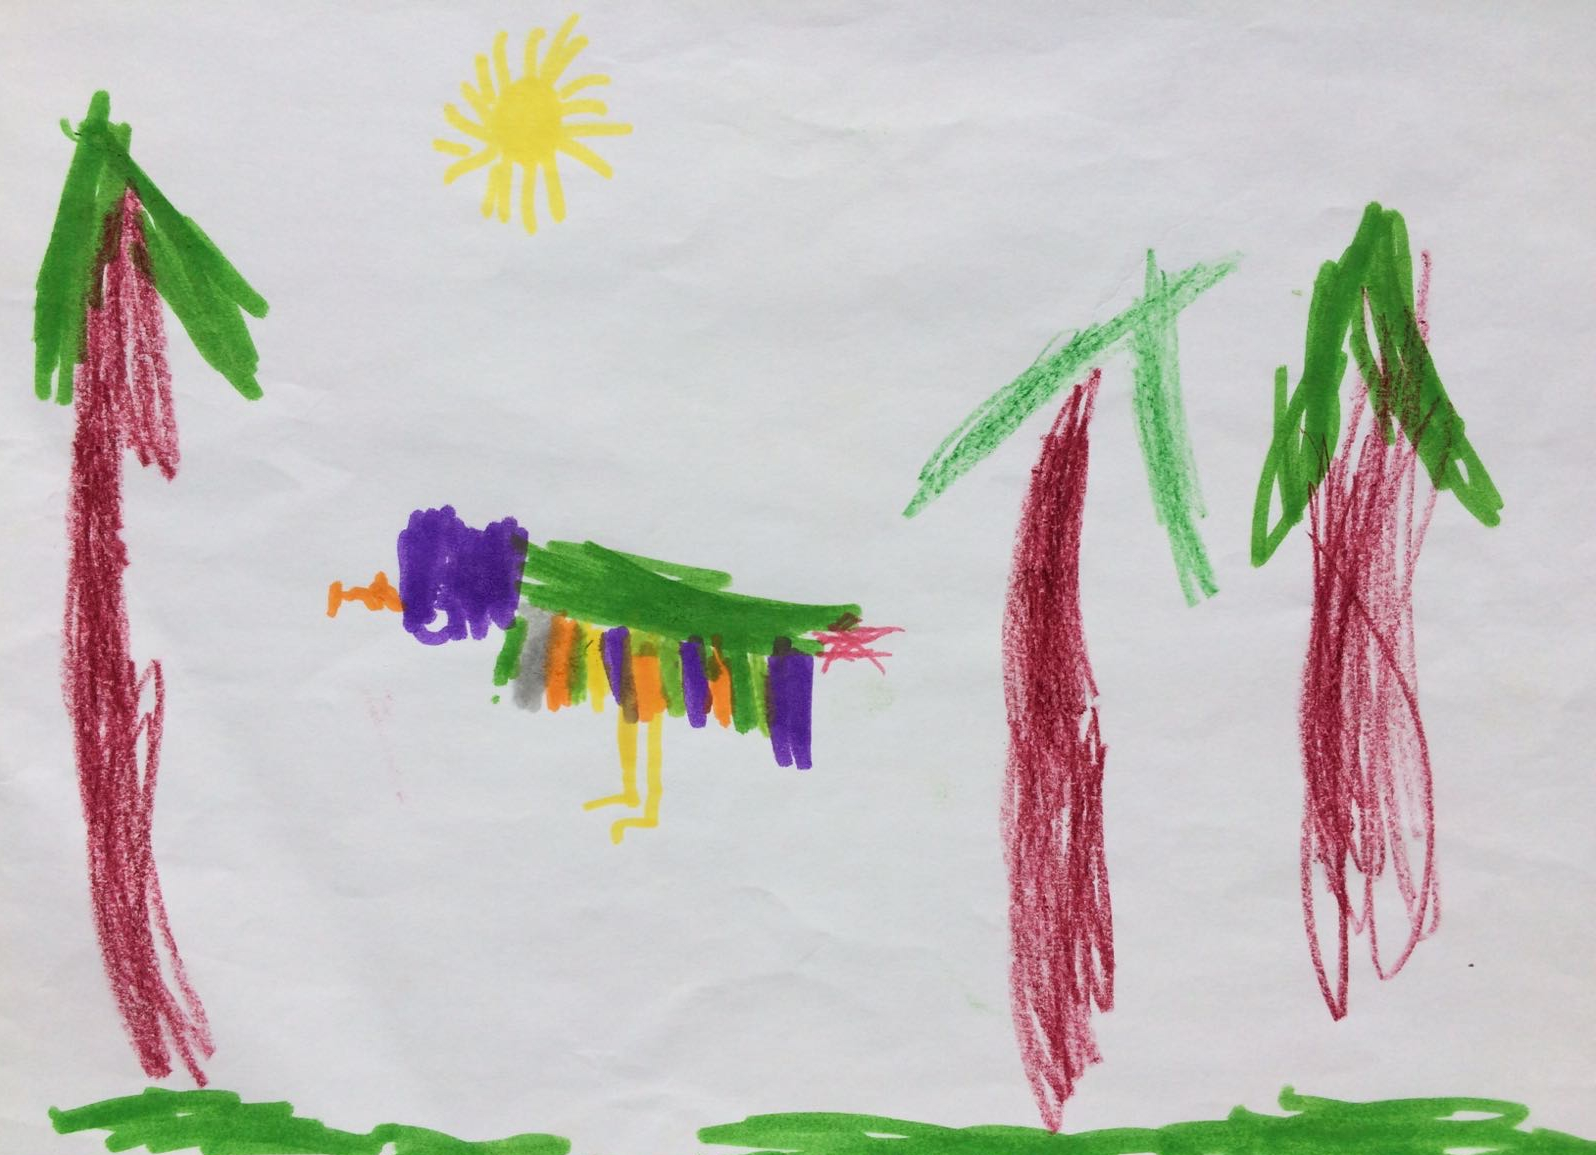 Parrot in the sunshine, by Nathan